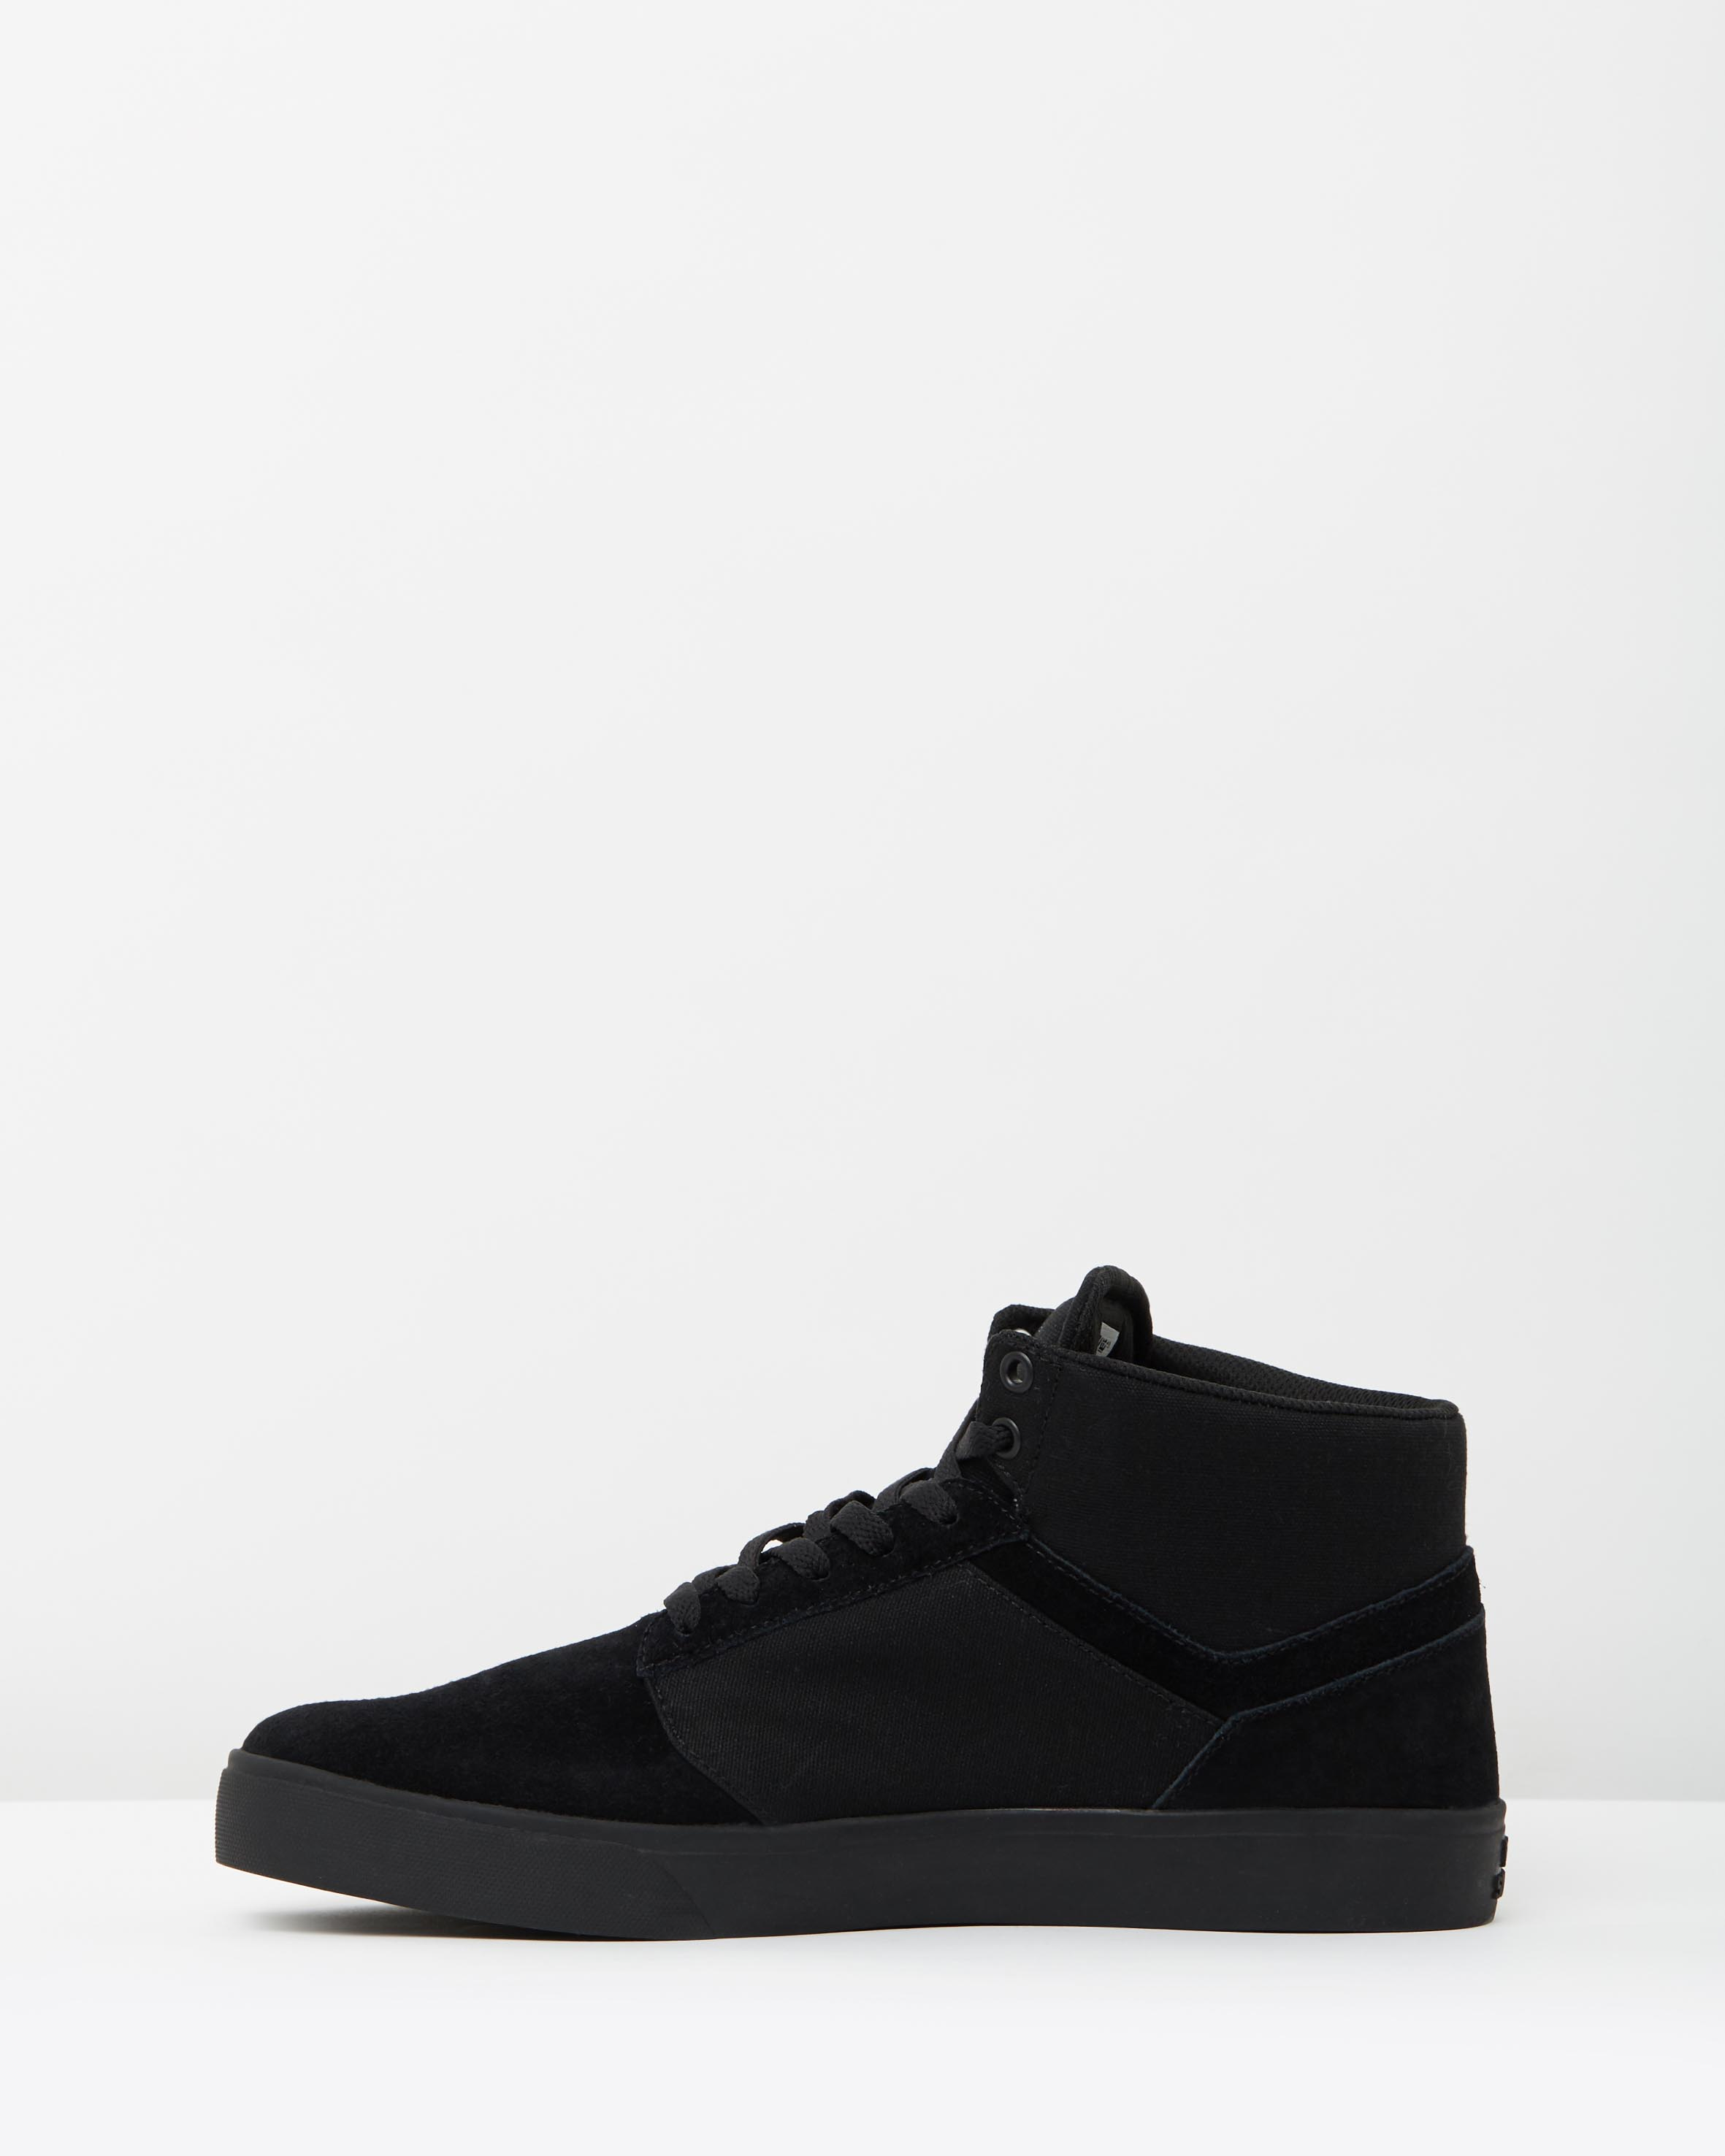 Supra-Yorek-High-Black-3.jpg